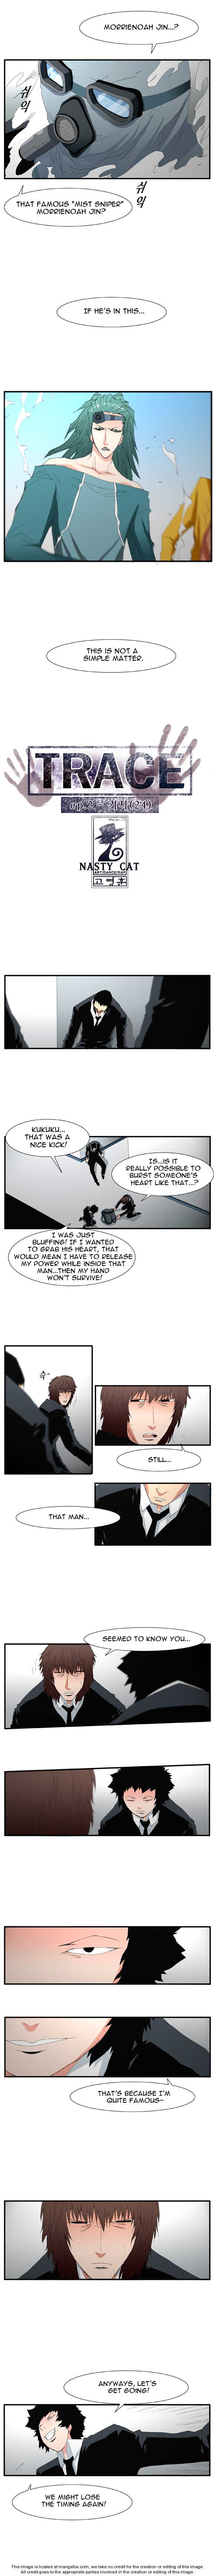 Trace 24 Page 1